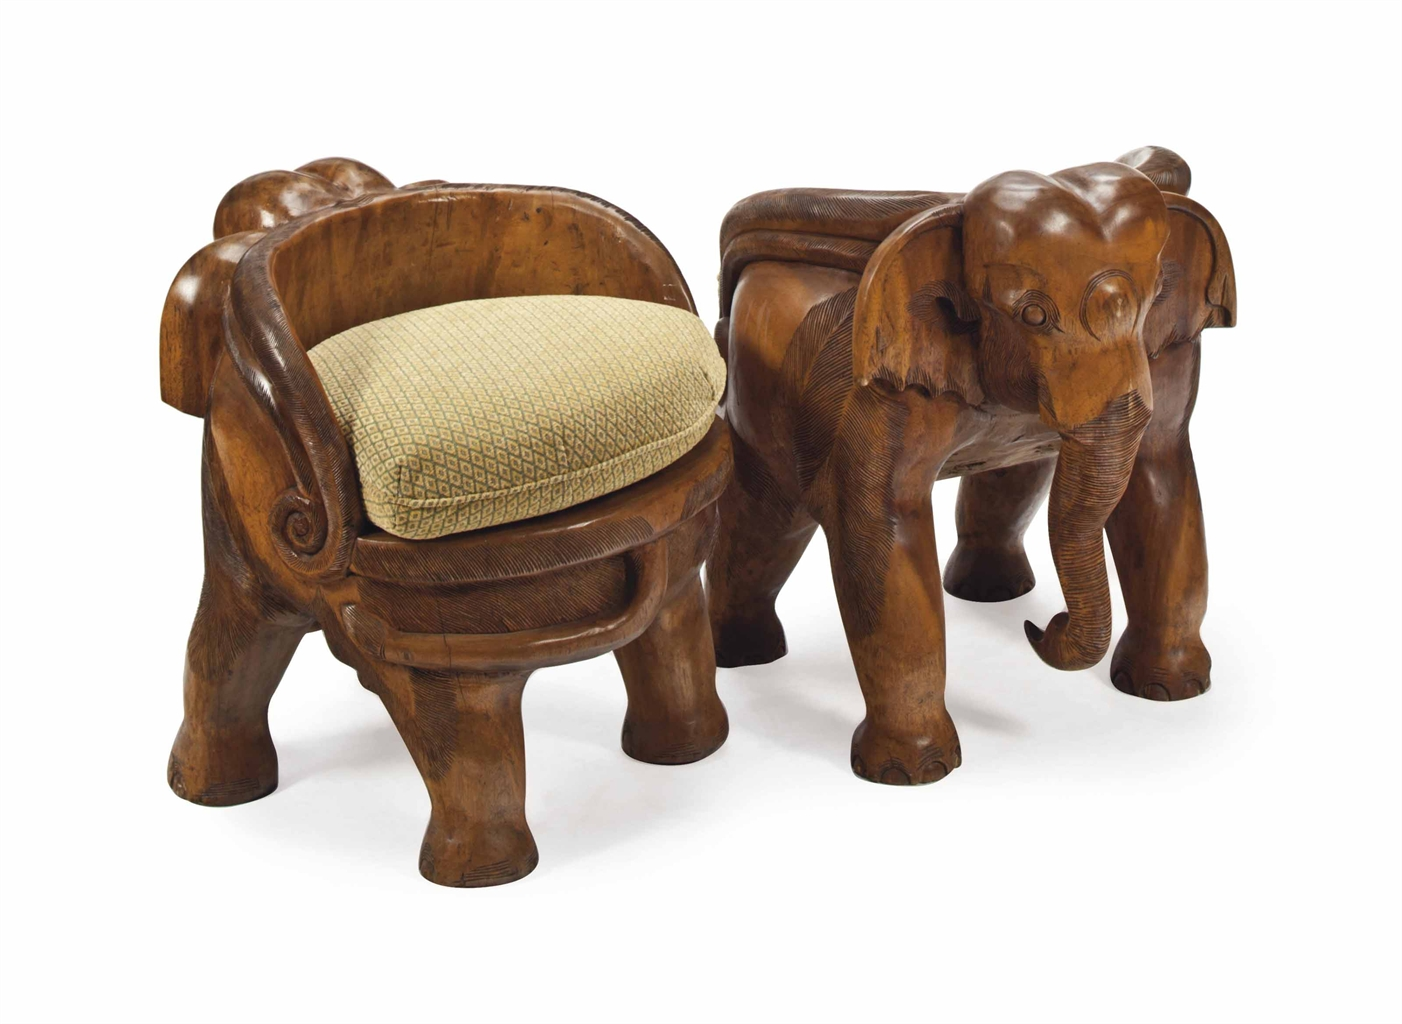 A Pair Of Carved Hardwood Elephant Form Small Chairs - Elephant Chair